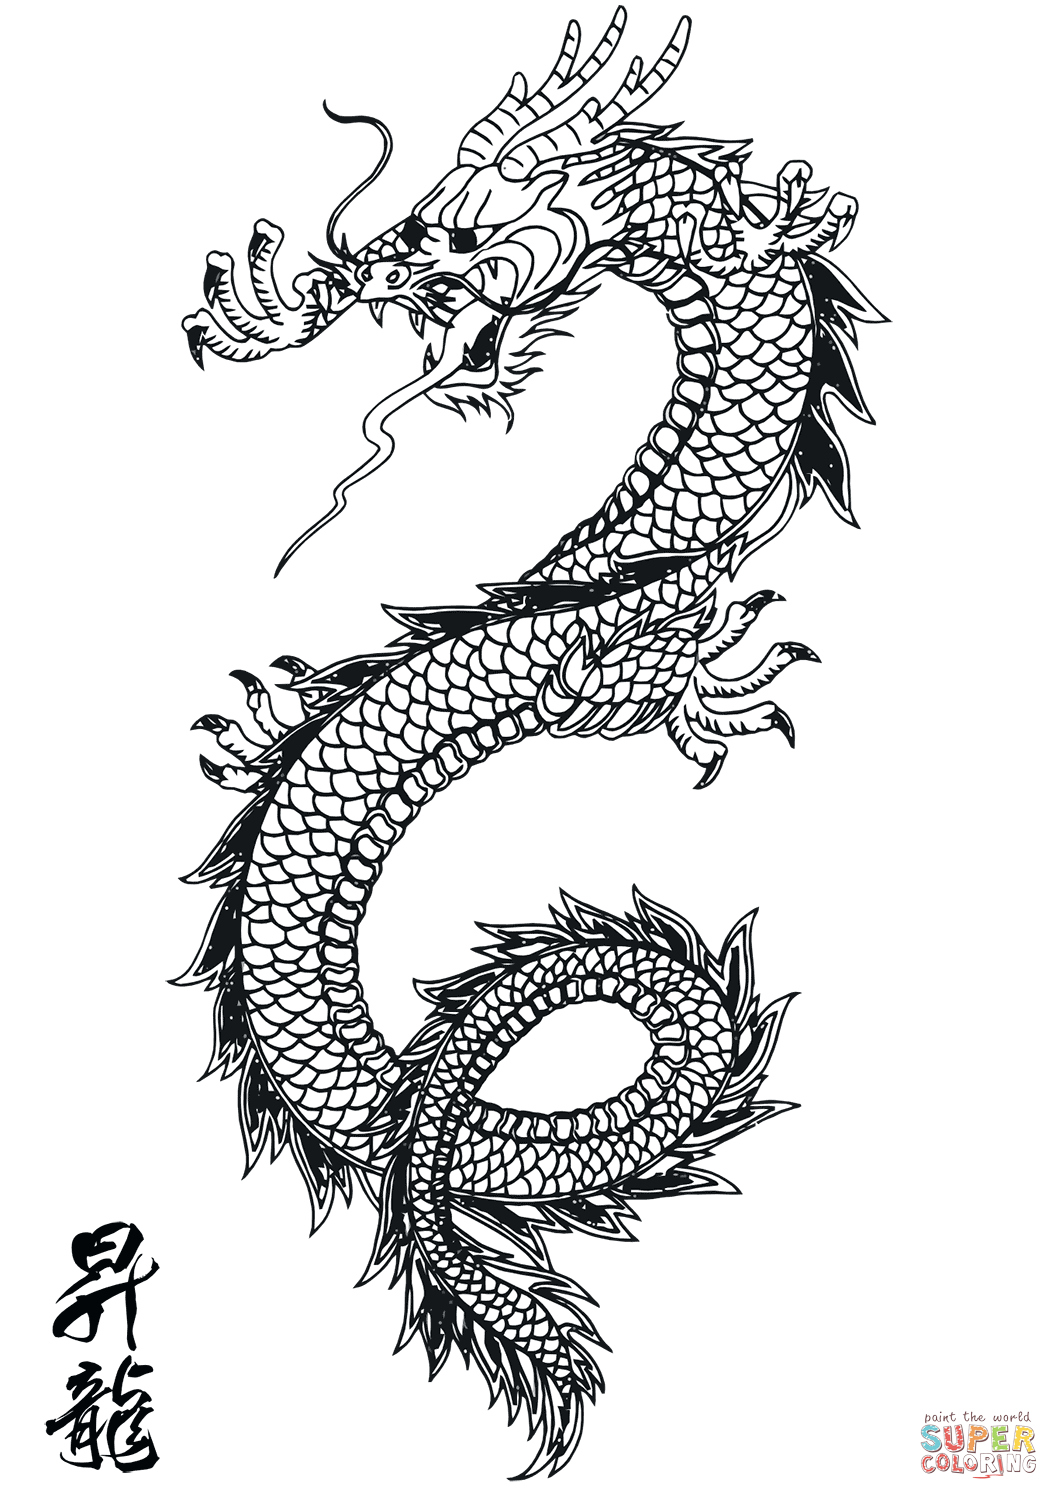 coloring pages chinese dragon chinese dragon coloring page free printable coloring pages chinese dragon coloring pages